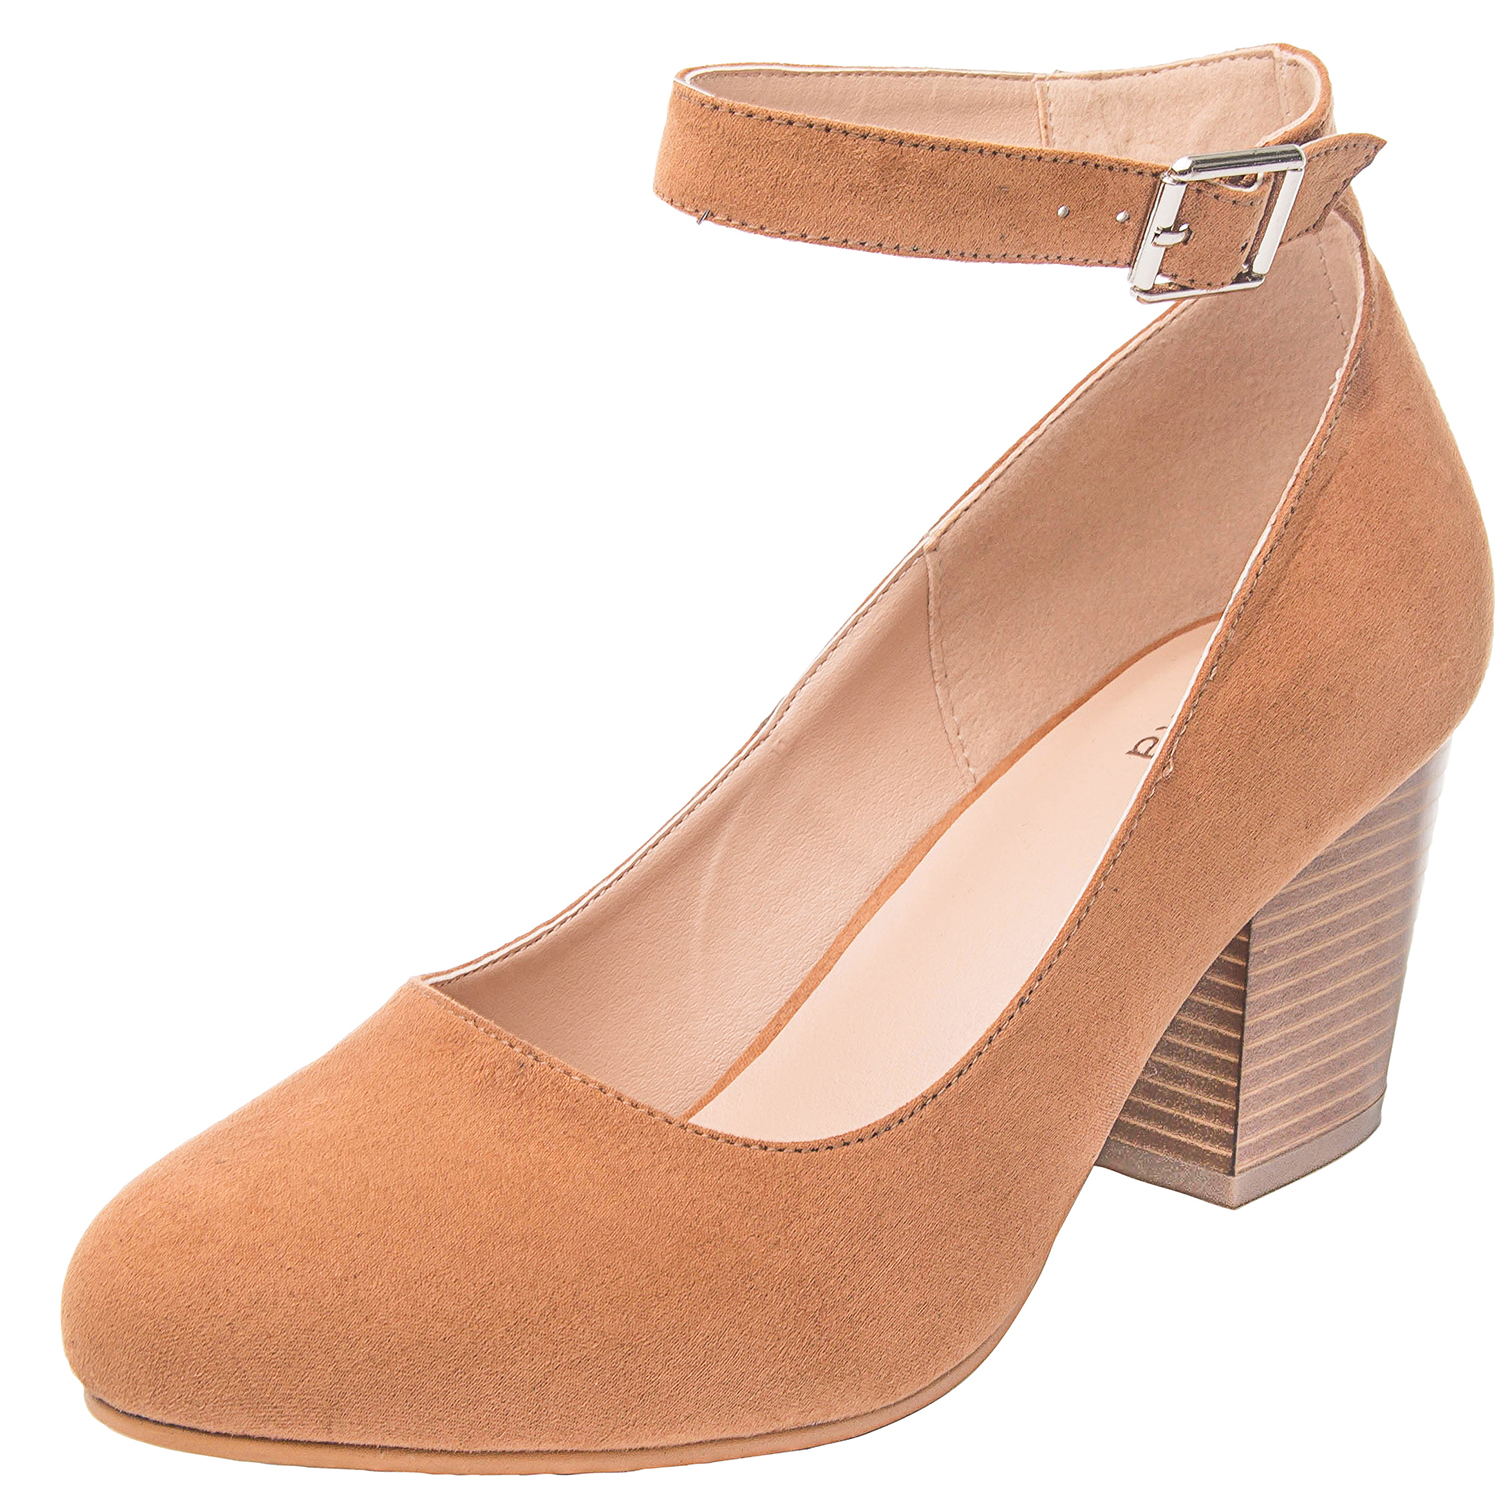 7c7fab76bfe2 US  39.99 - Luoika Women s Wide Width Heel Pump - Ankle Buckle Strap Round  Closed Toe Dressing Shoes. - www.luoika-us.com